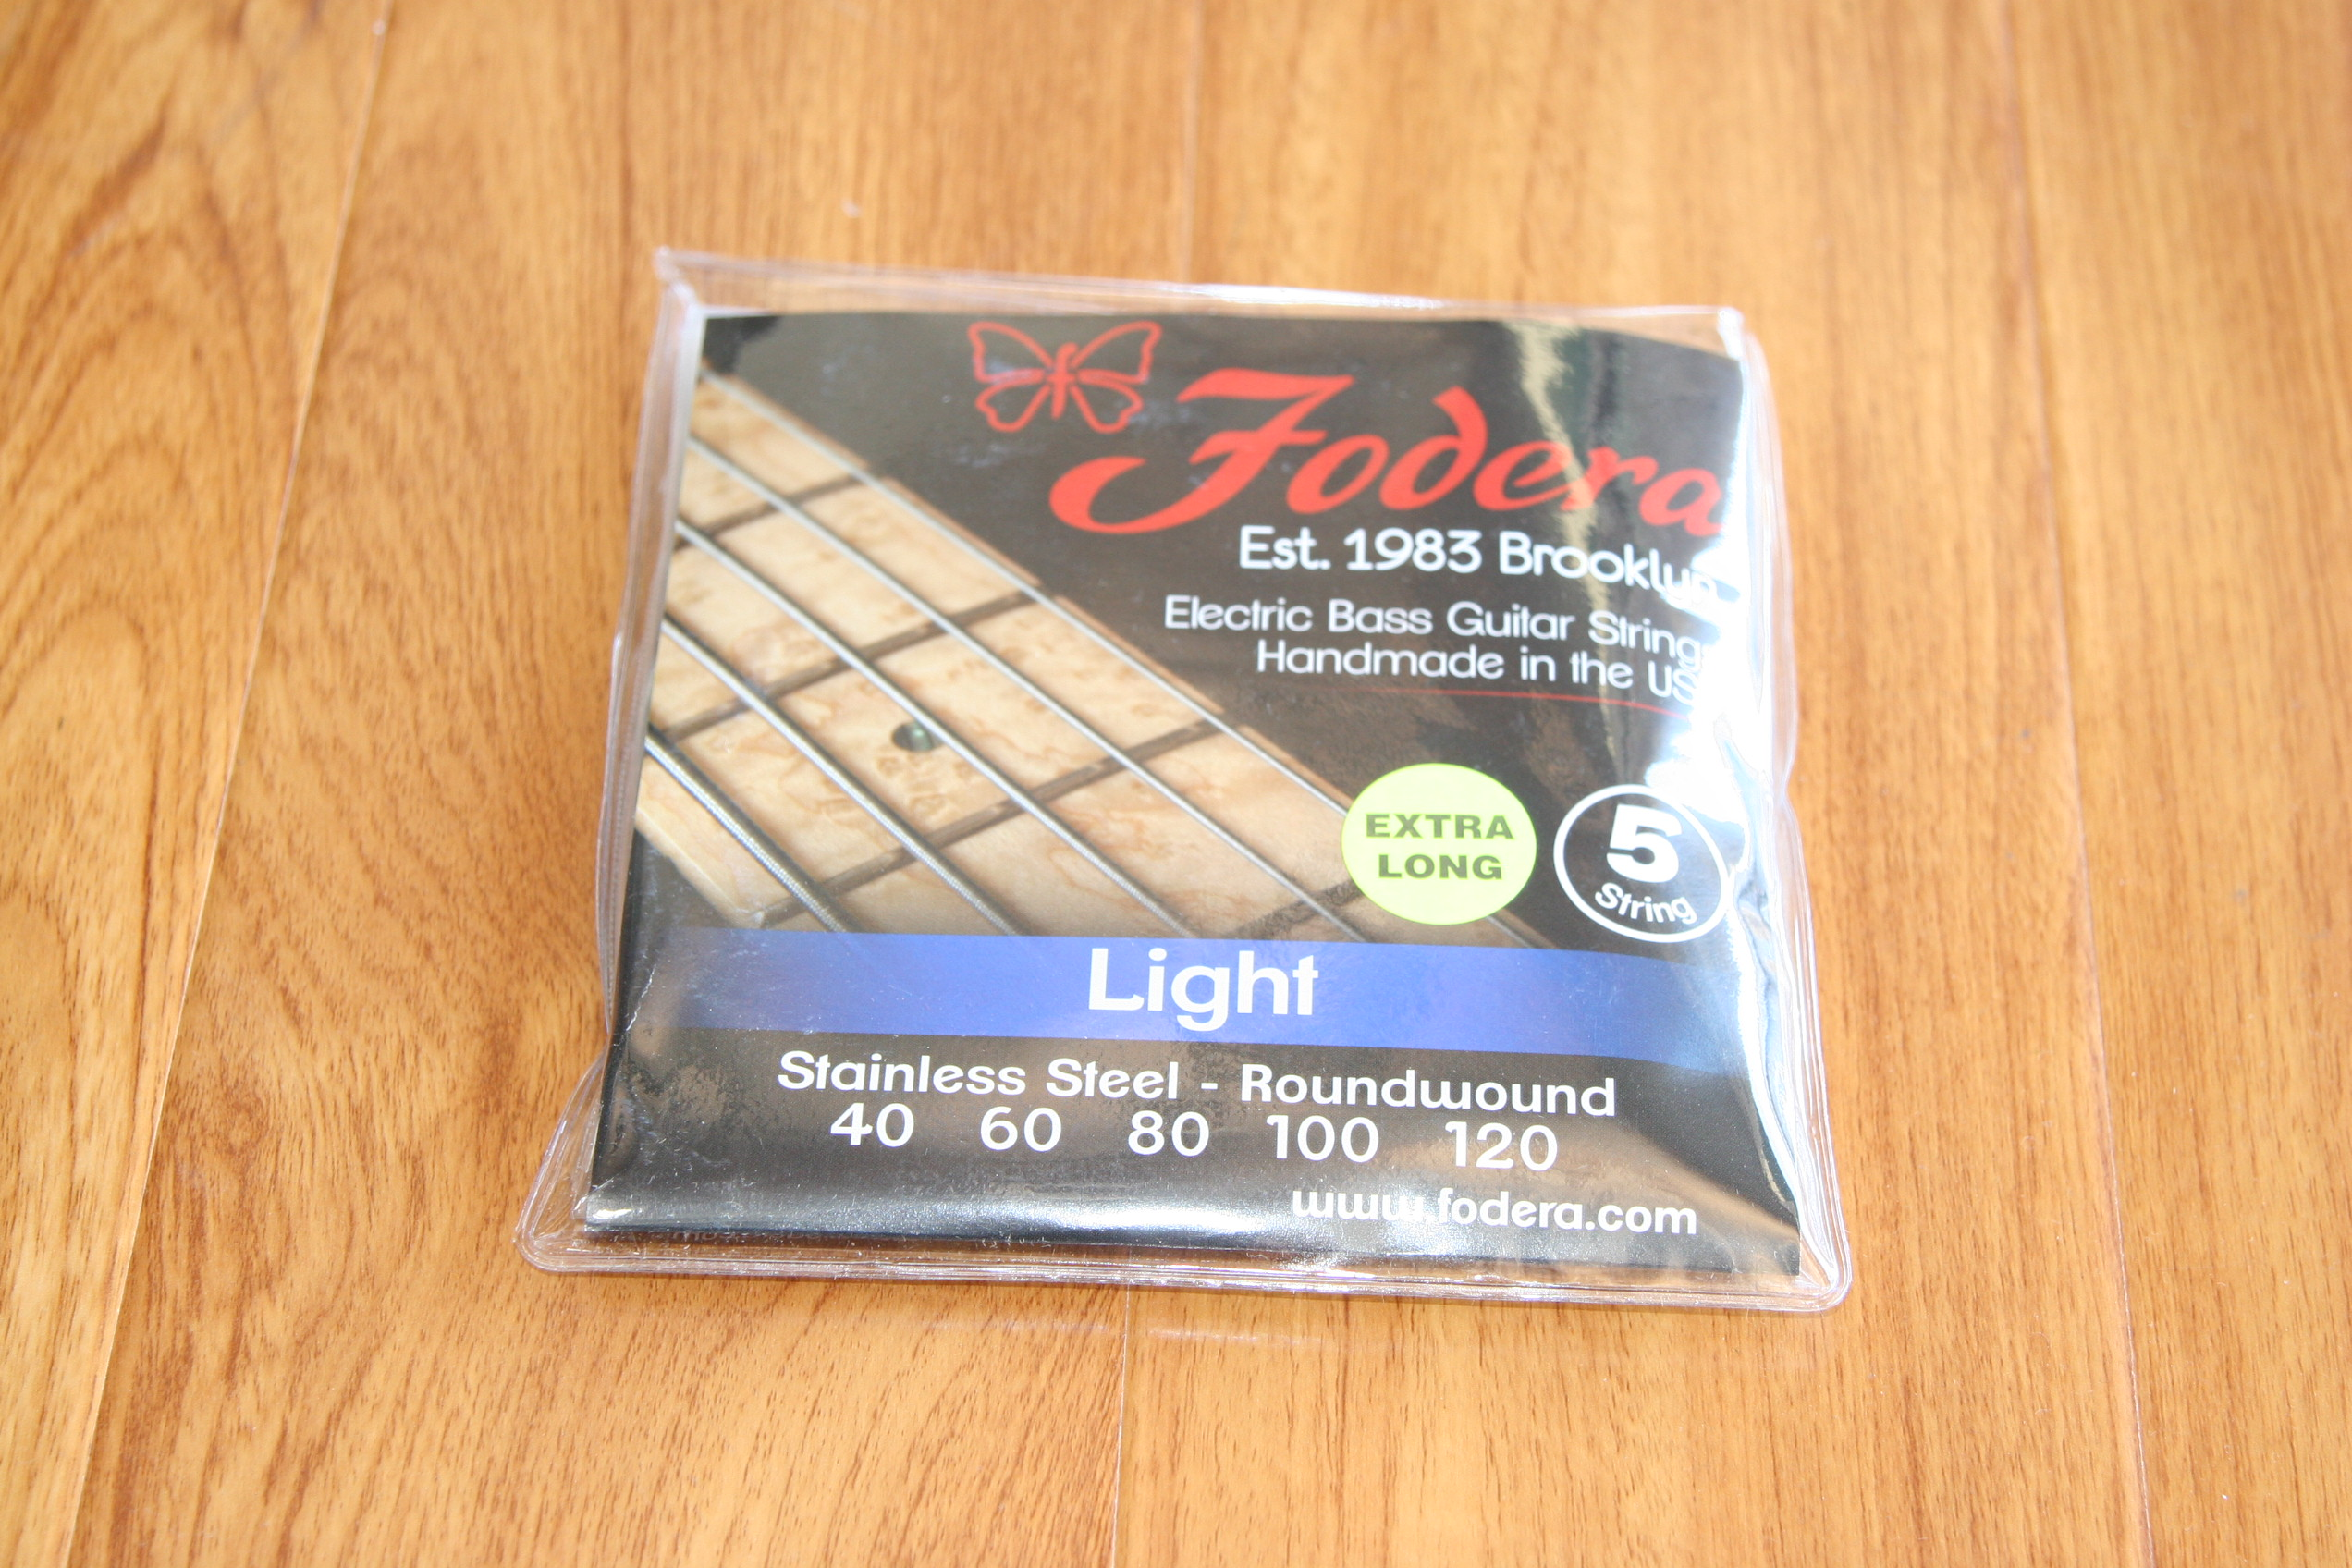 Fodera Bass Strings- 5 String Light Stainless Extra Long